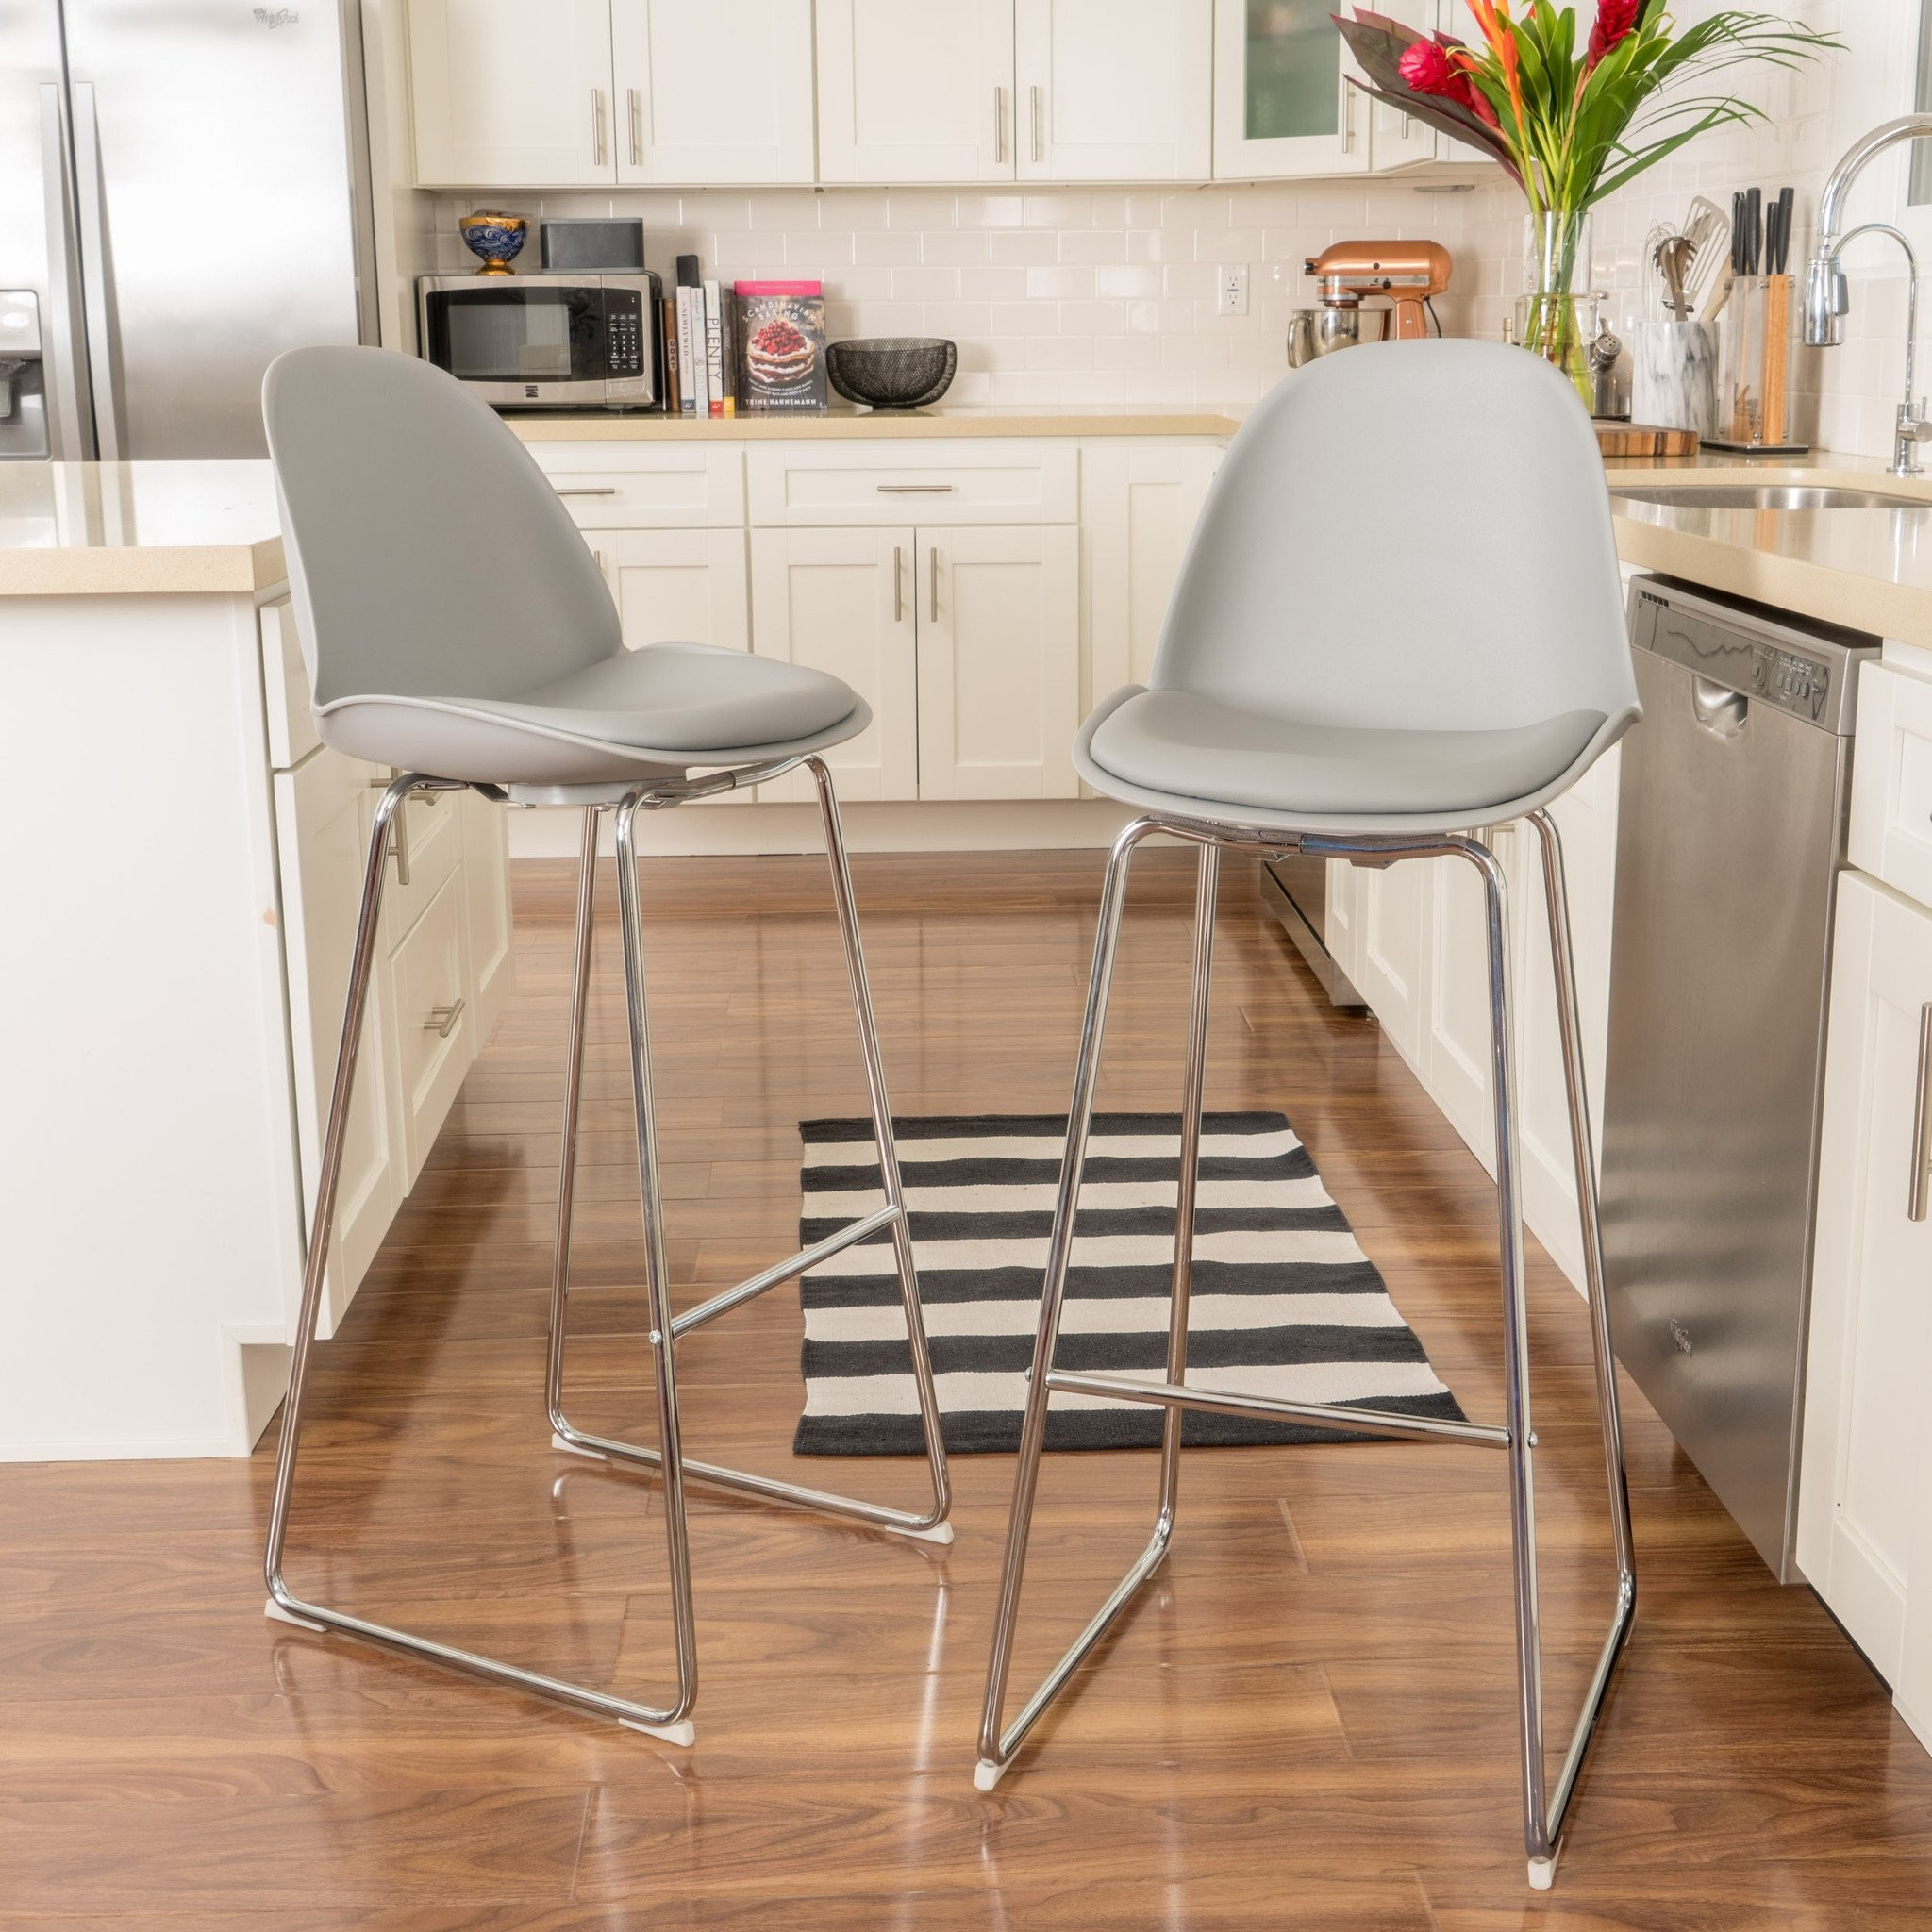 Torney Contemporary Grey Bar Chair (Set of 2)